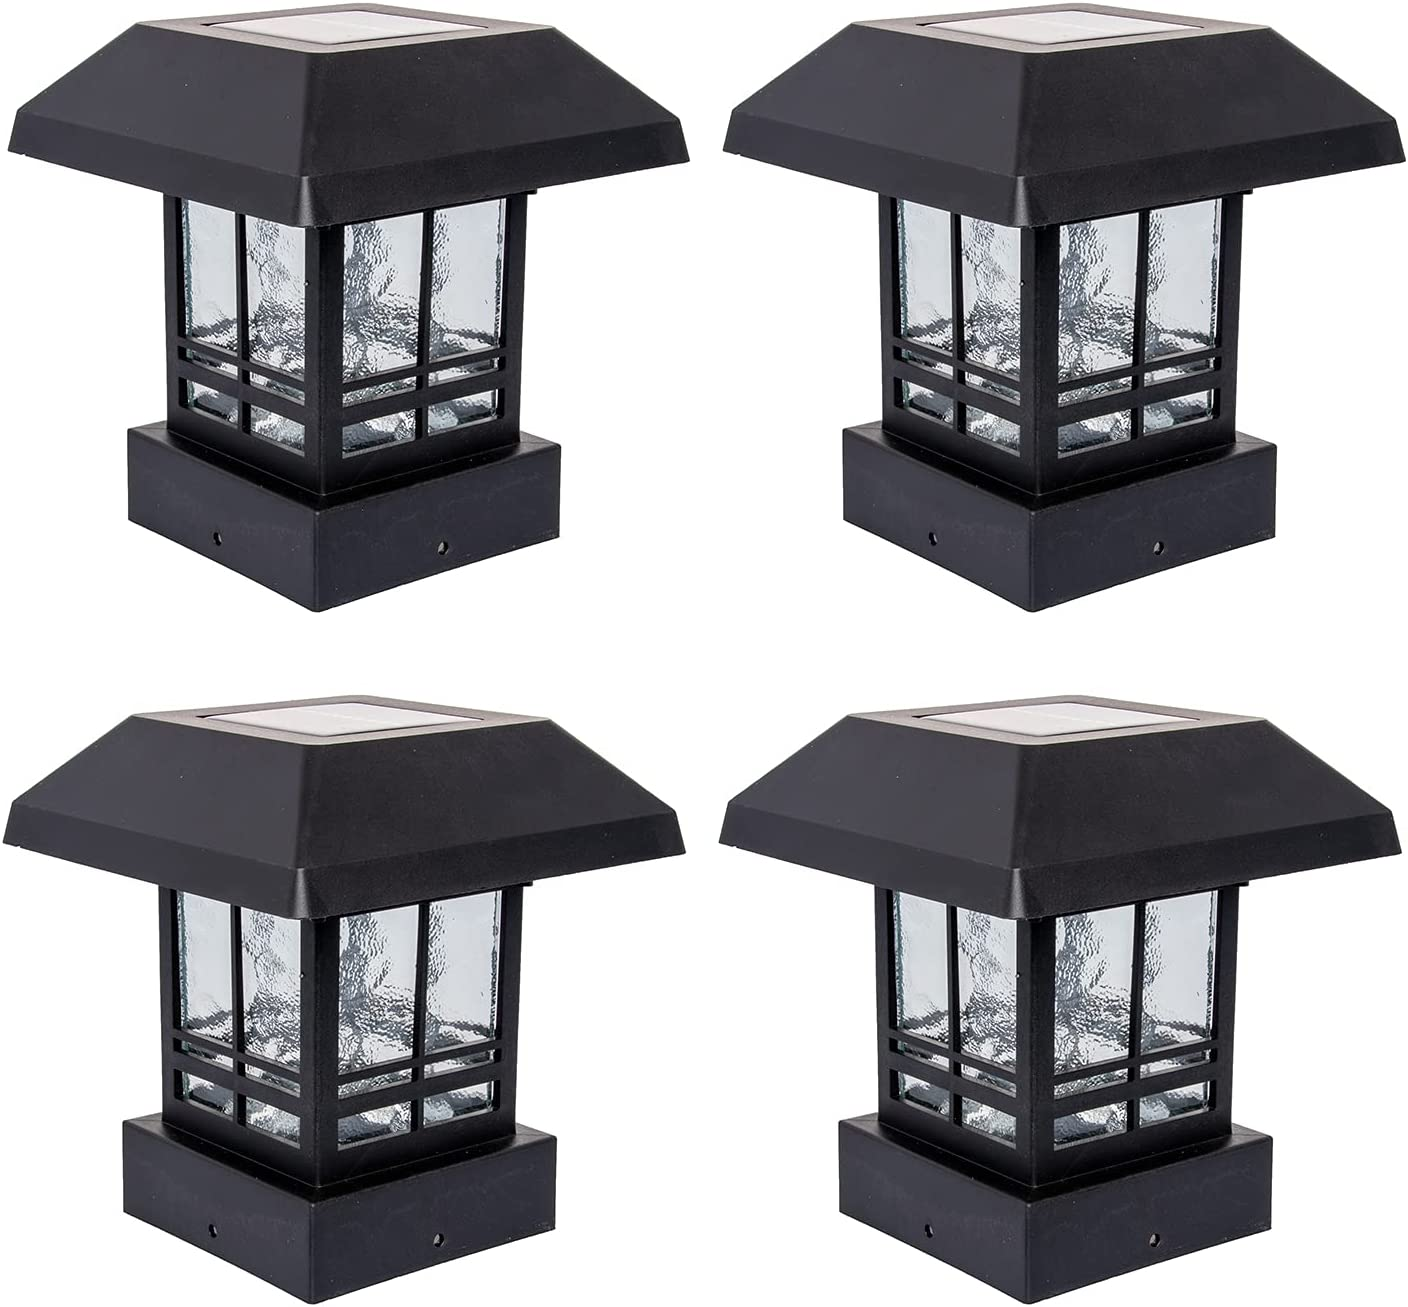 GreenLighting 4 Pack Trophy 15 Max 71% OFF Lumen LED Post OFFicial site Cap Solar Powered